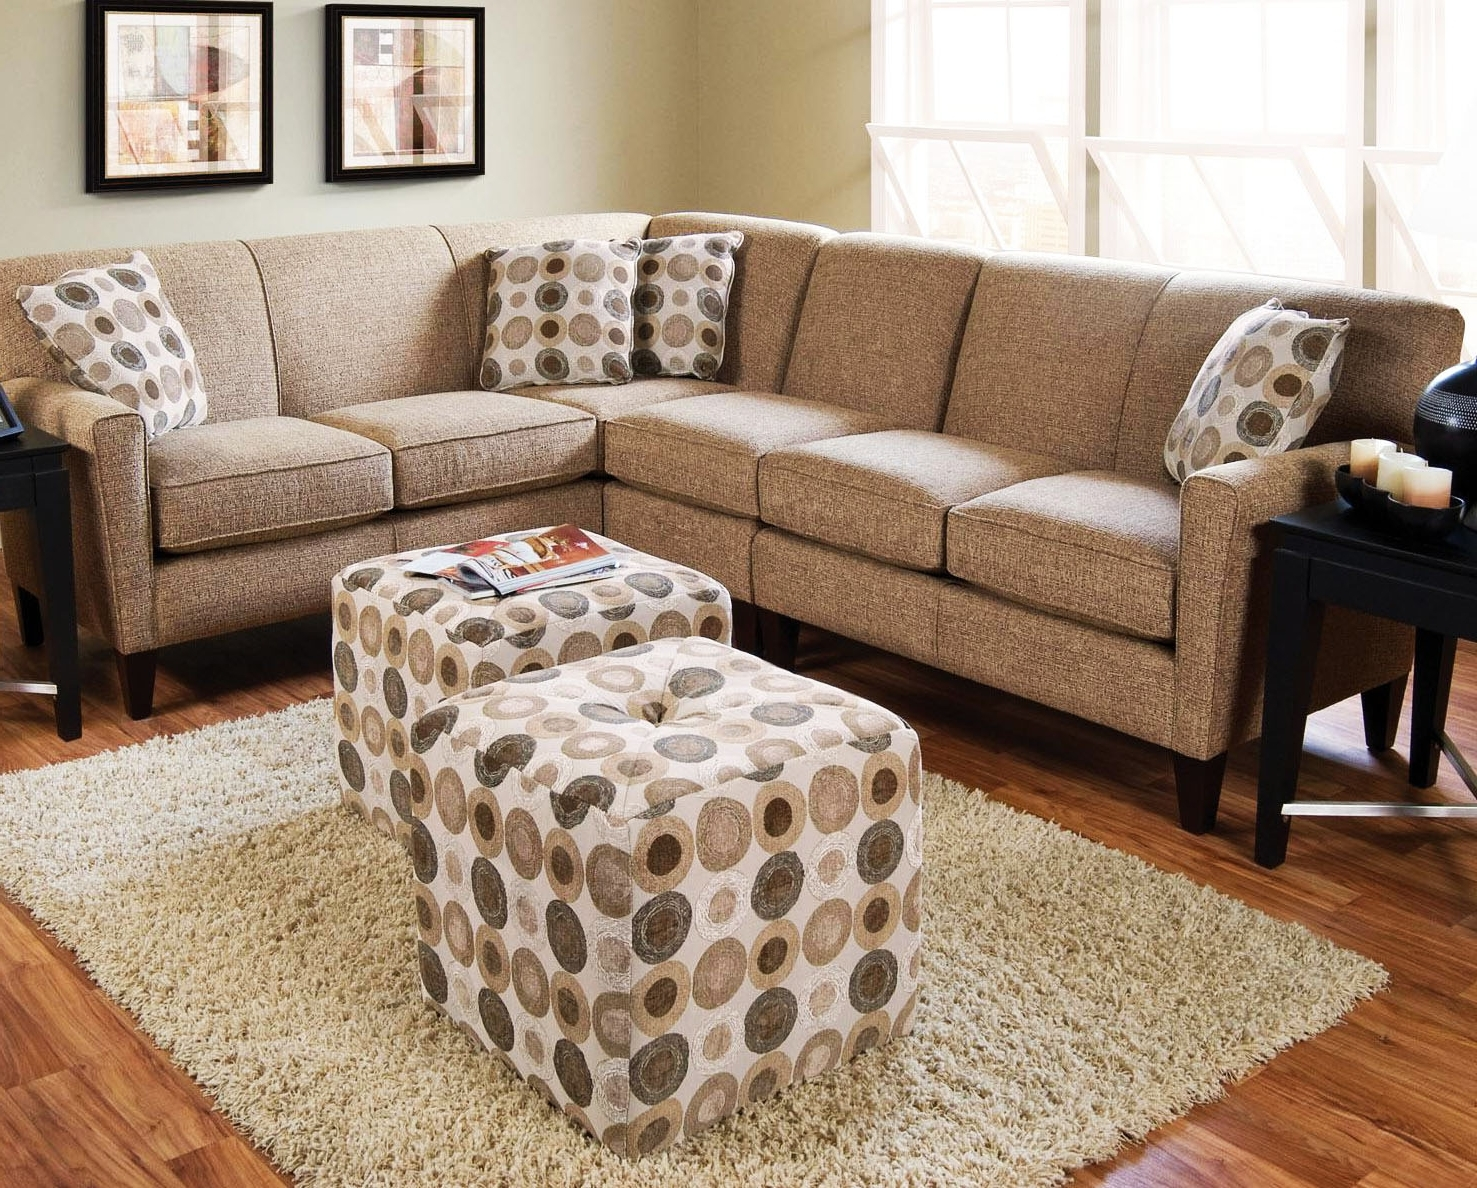 Awesome Small Sectional Sofa With Chaise Lounge 92 On Small Space Intended For Most Up To Date Small Sectional Sofas With Chaise Lounge (View 3 of 15)